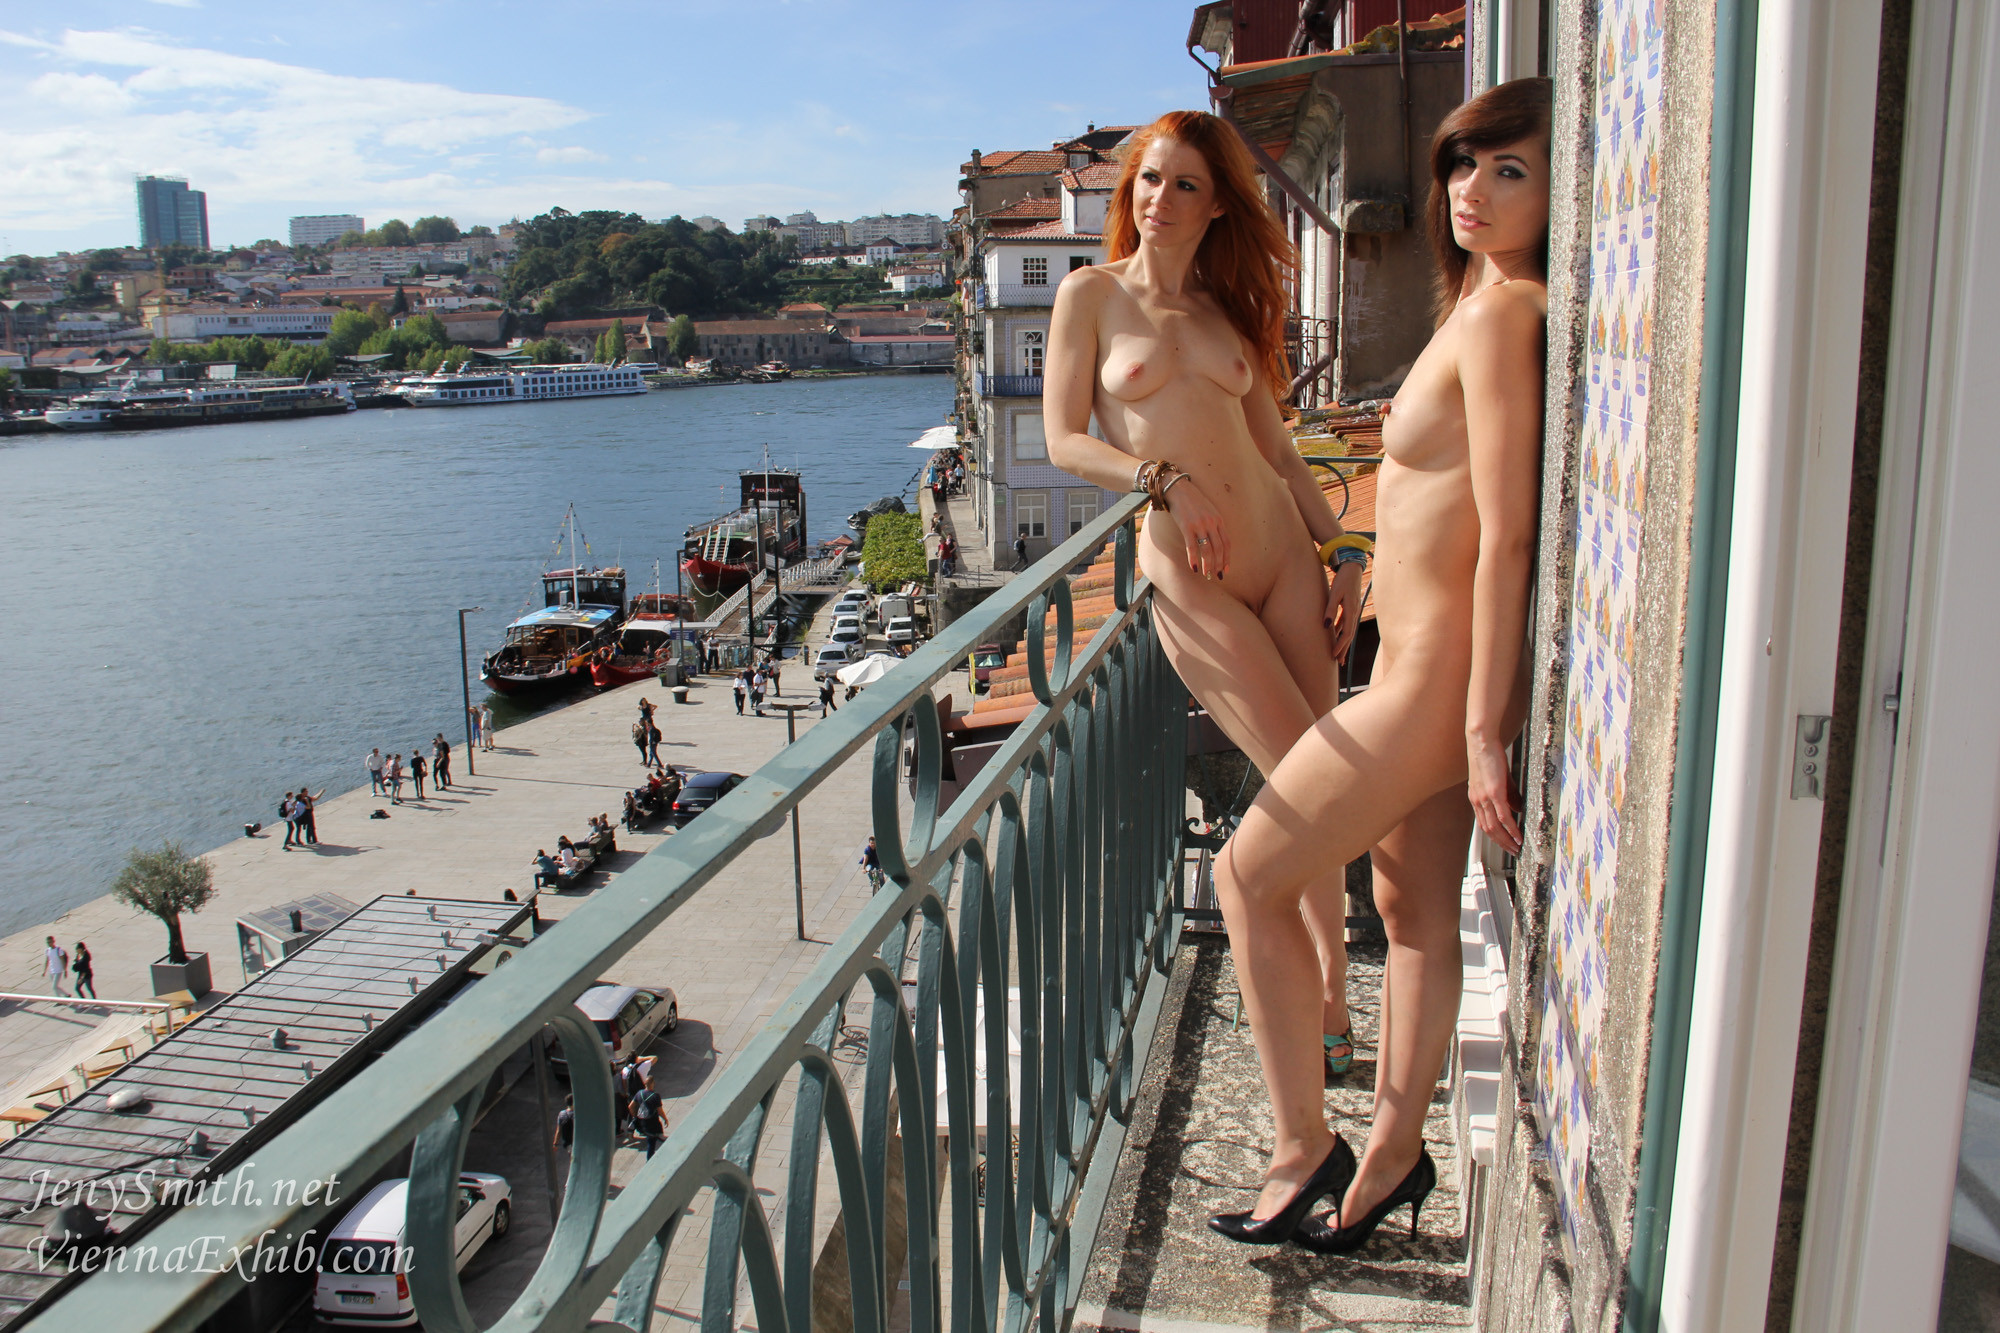 Jeny Smith and a Friend Naked on a Balcony - Sexy Gallery Full Photo #177655 - SexyAndFunny.com